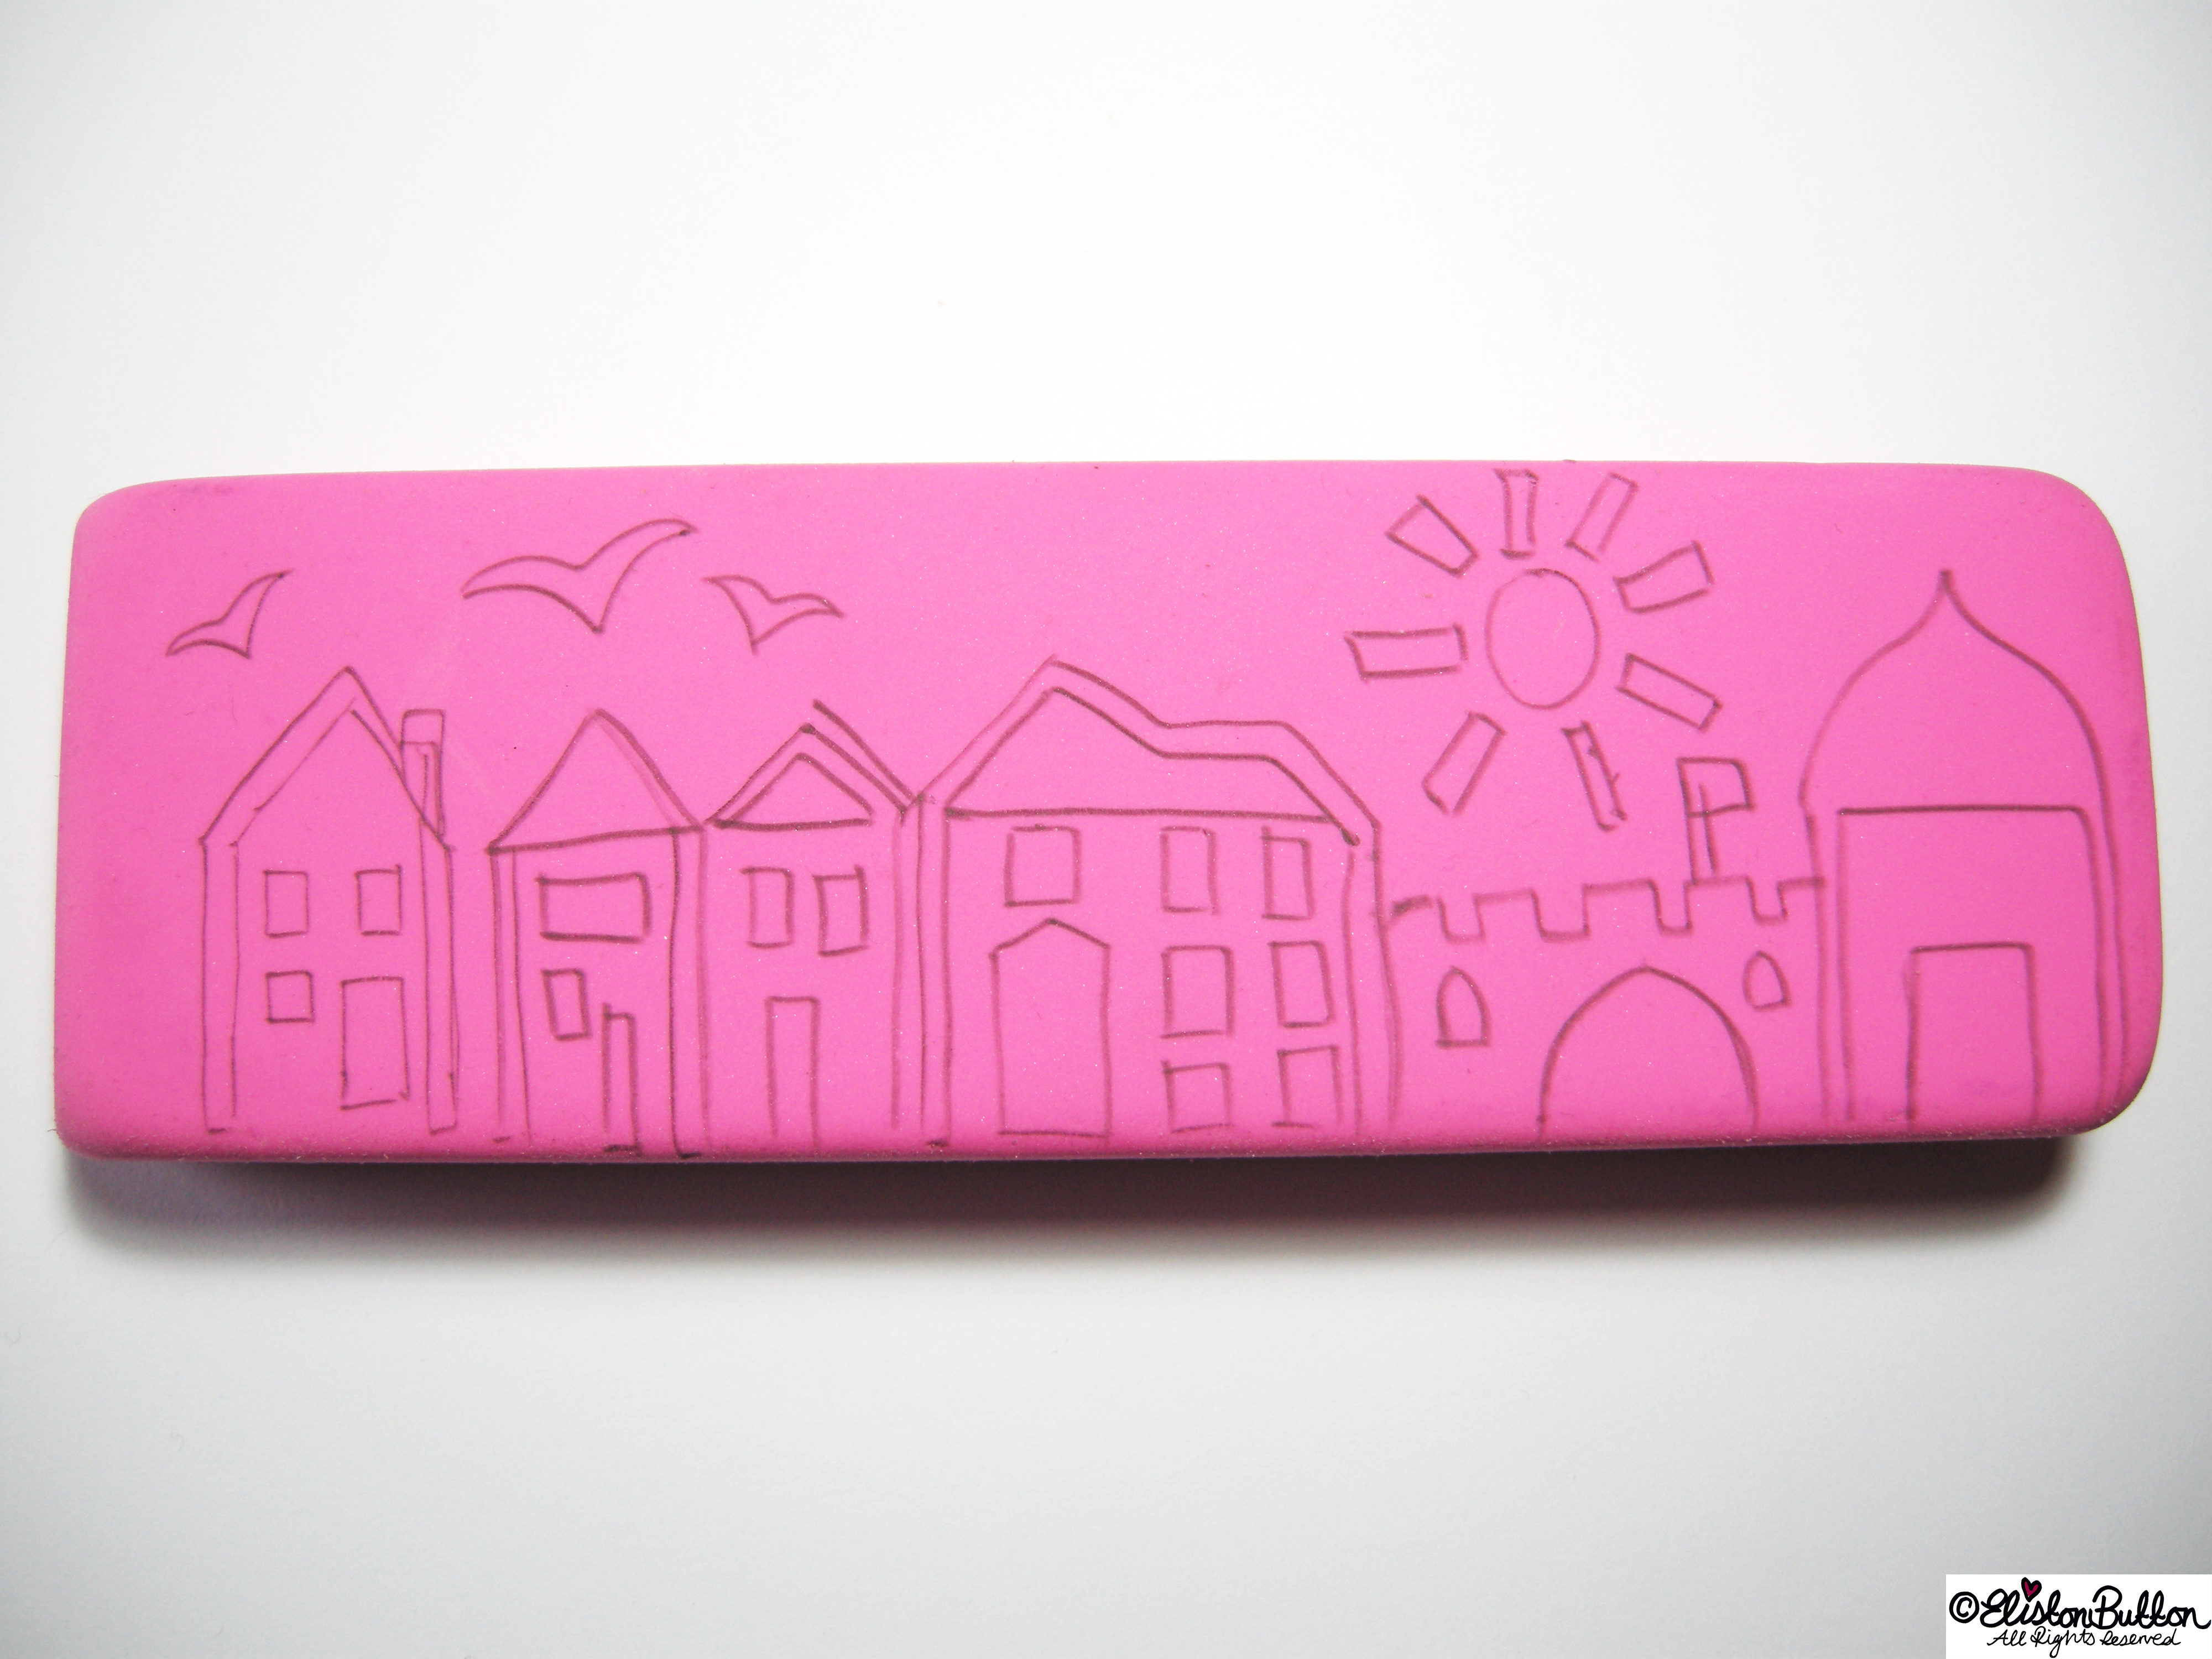 Drawn Out a Design on Rubber for Stamp Carving - Hand-Carved Streetscape Stamps at www.elistonbutton.com - Eliston Button - That Crafty Kid – Art, Design, Craft & Adventure.